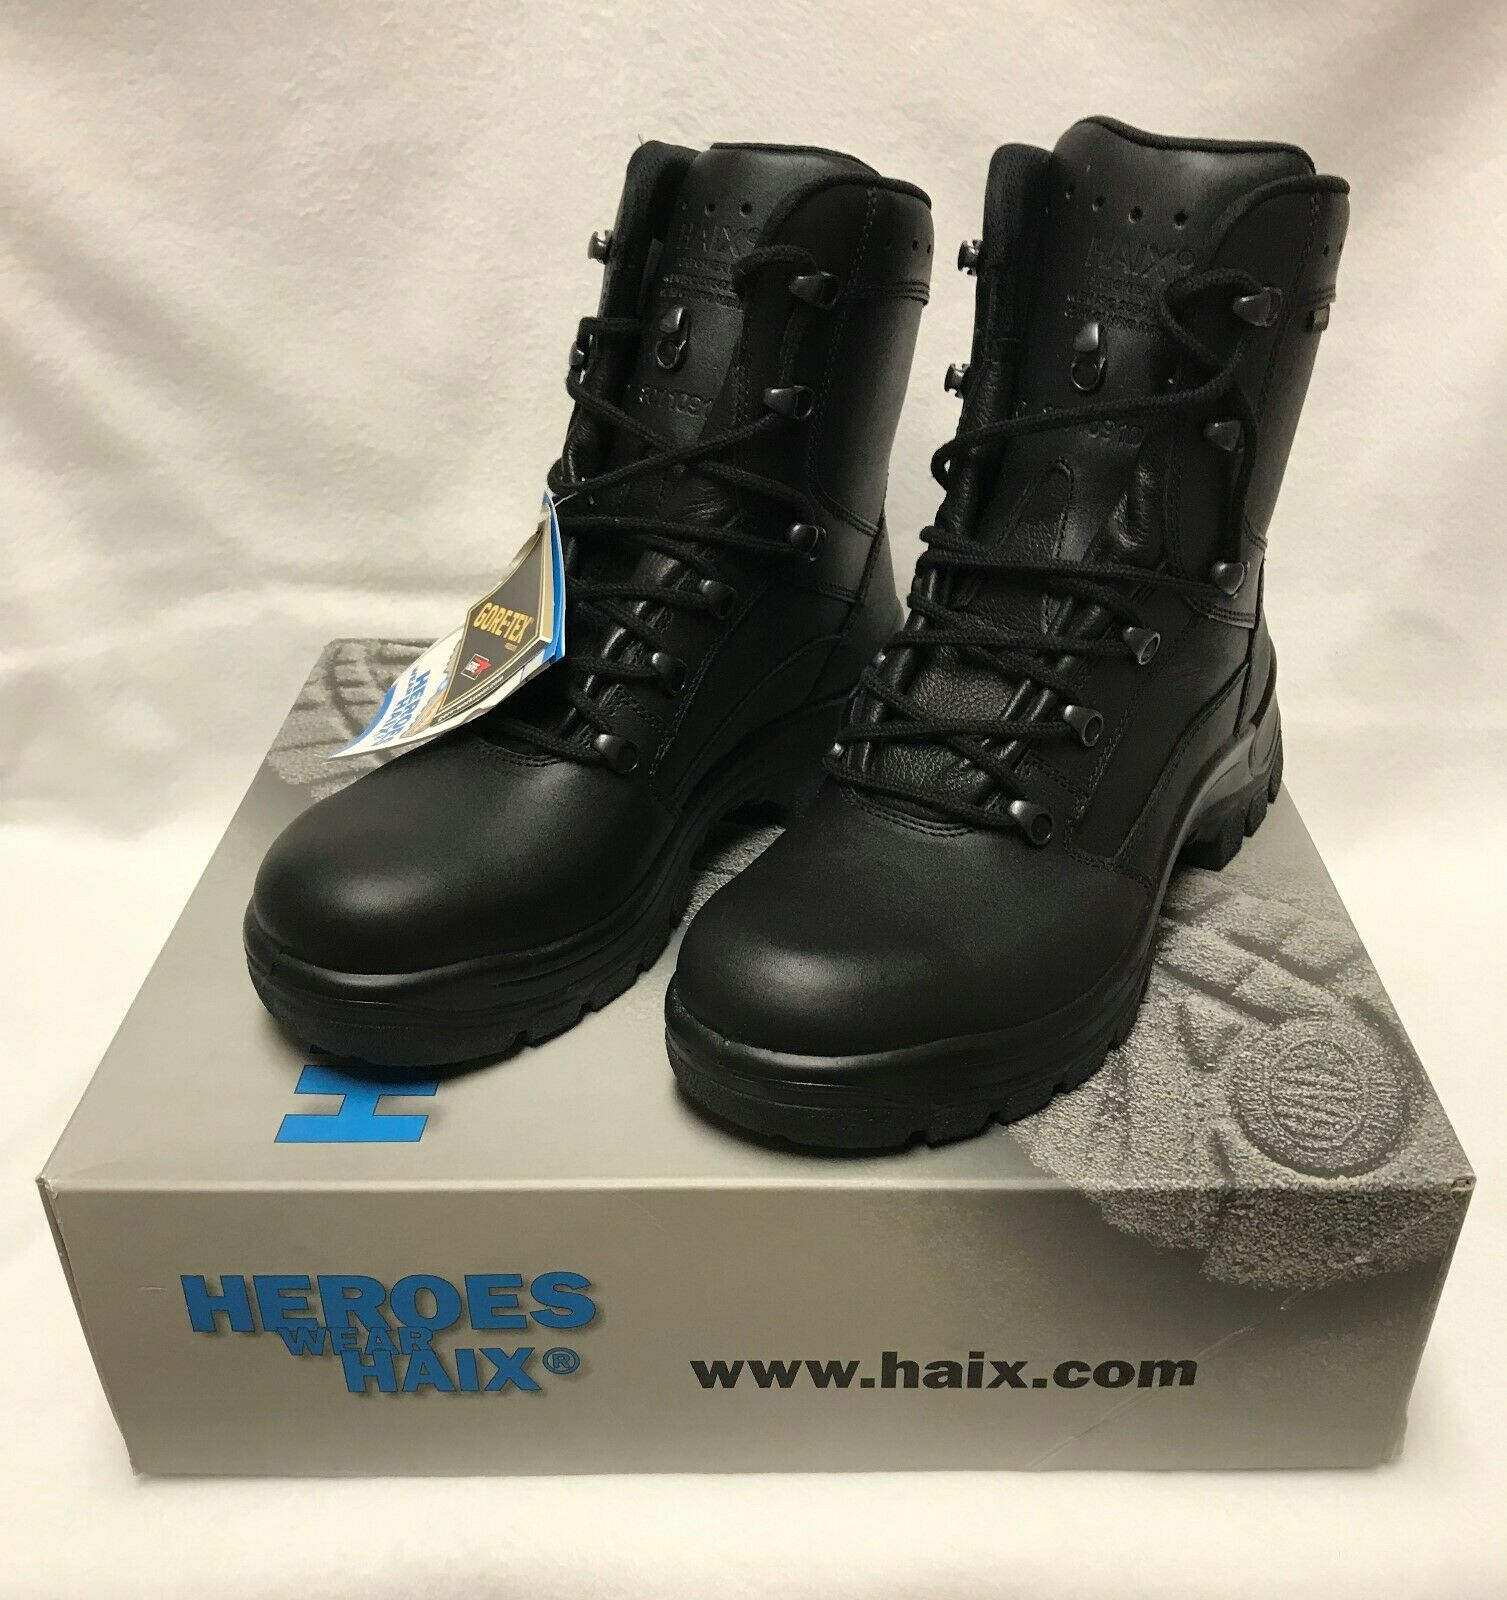 Haix 206215 Mens Airpower P7 HighTop Leather Tactical Police  Duty Boot SZ 8 1 2W  various sizes